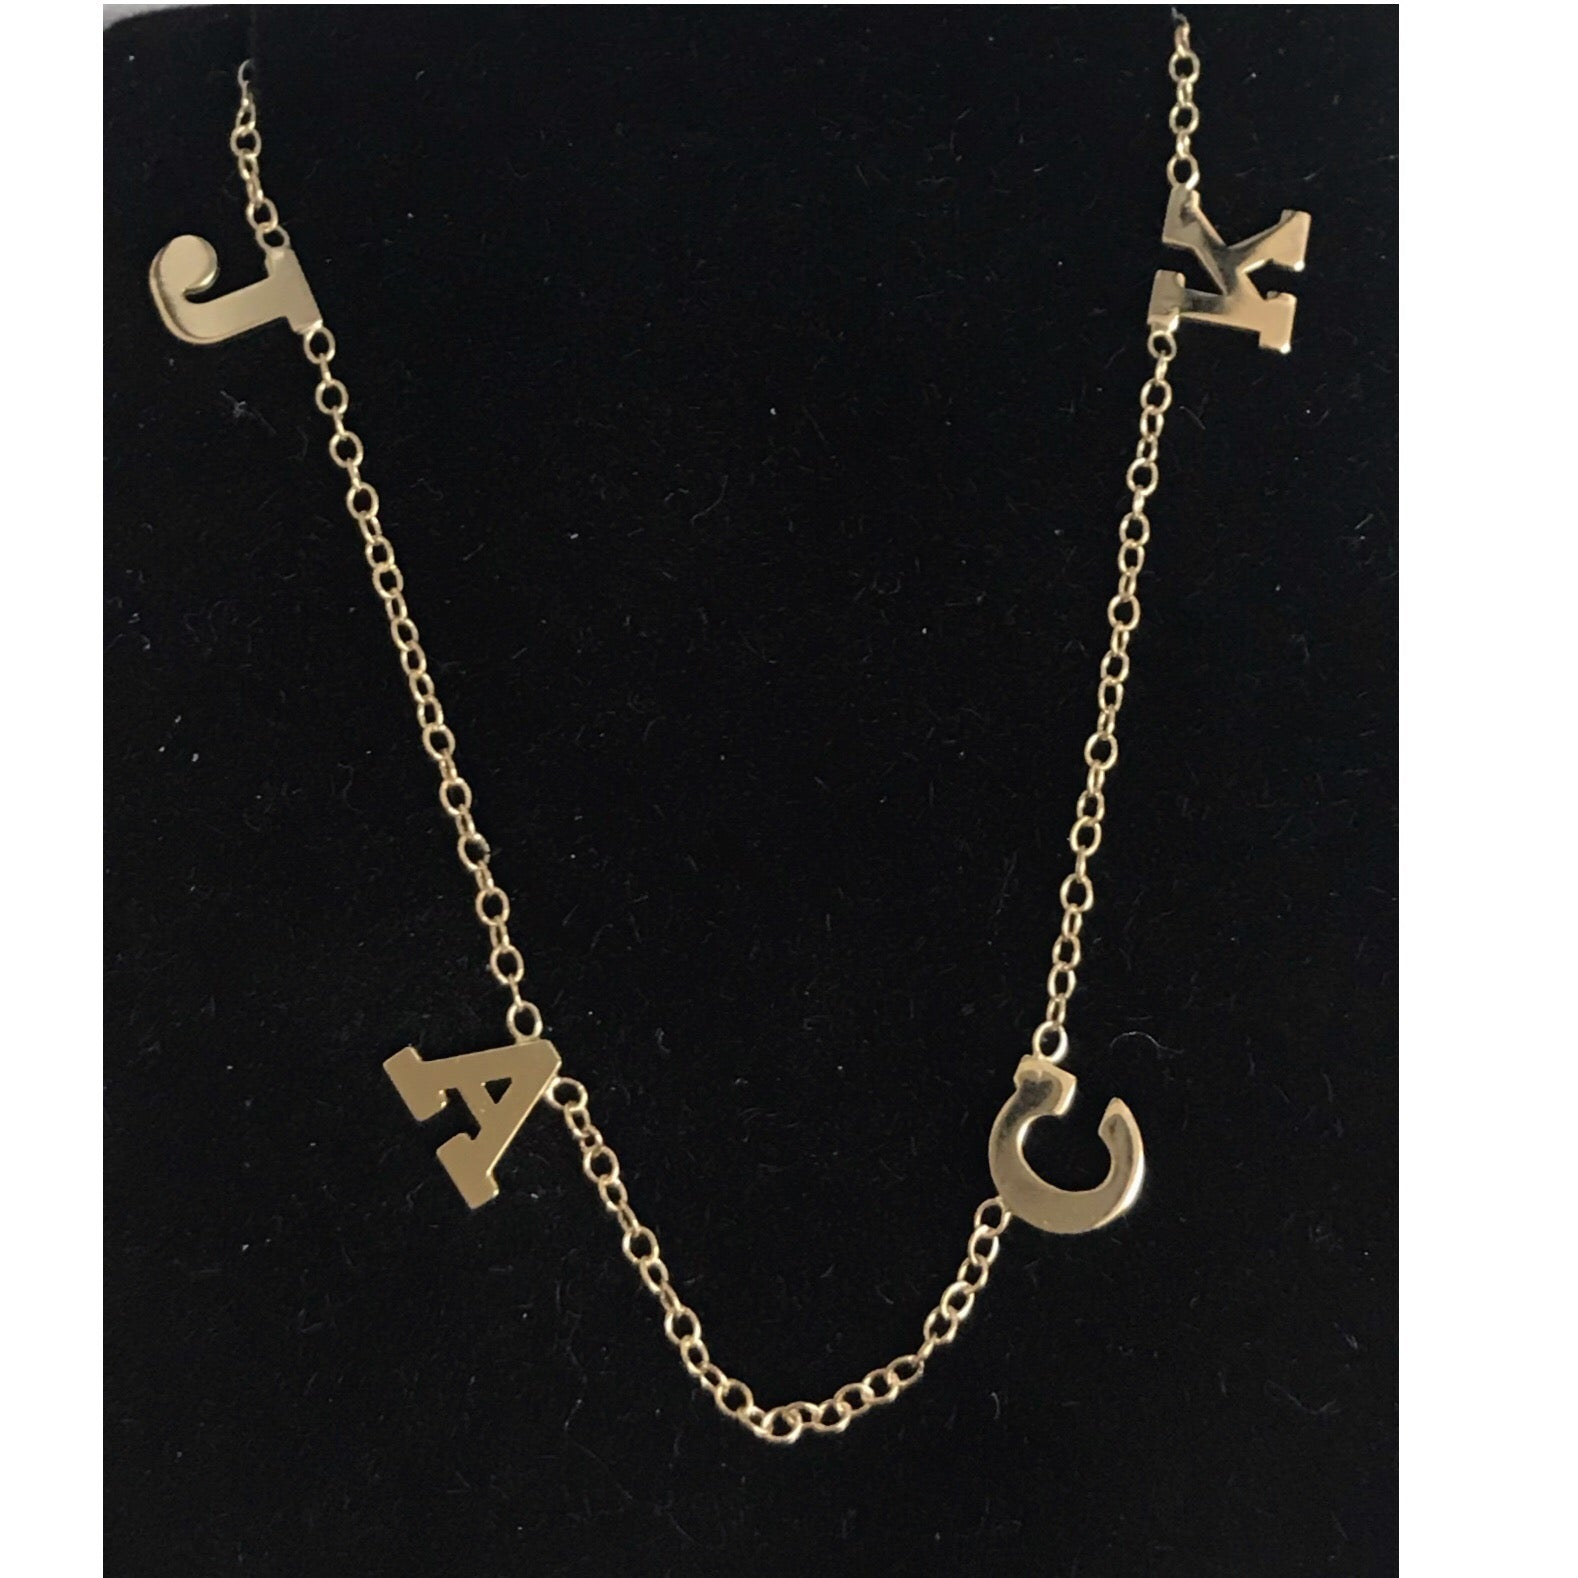 14K Gold Four Letter Initial Necklace